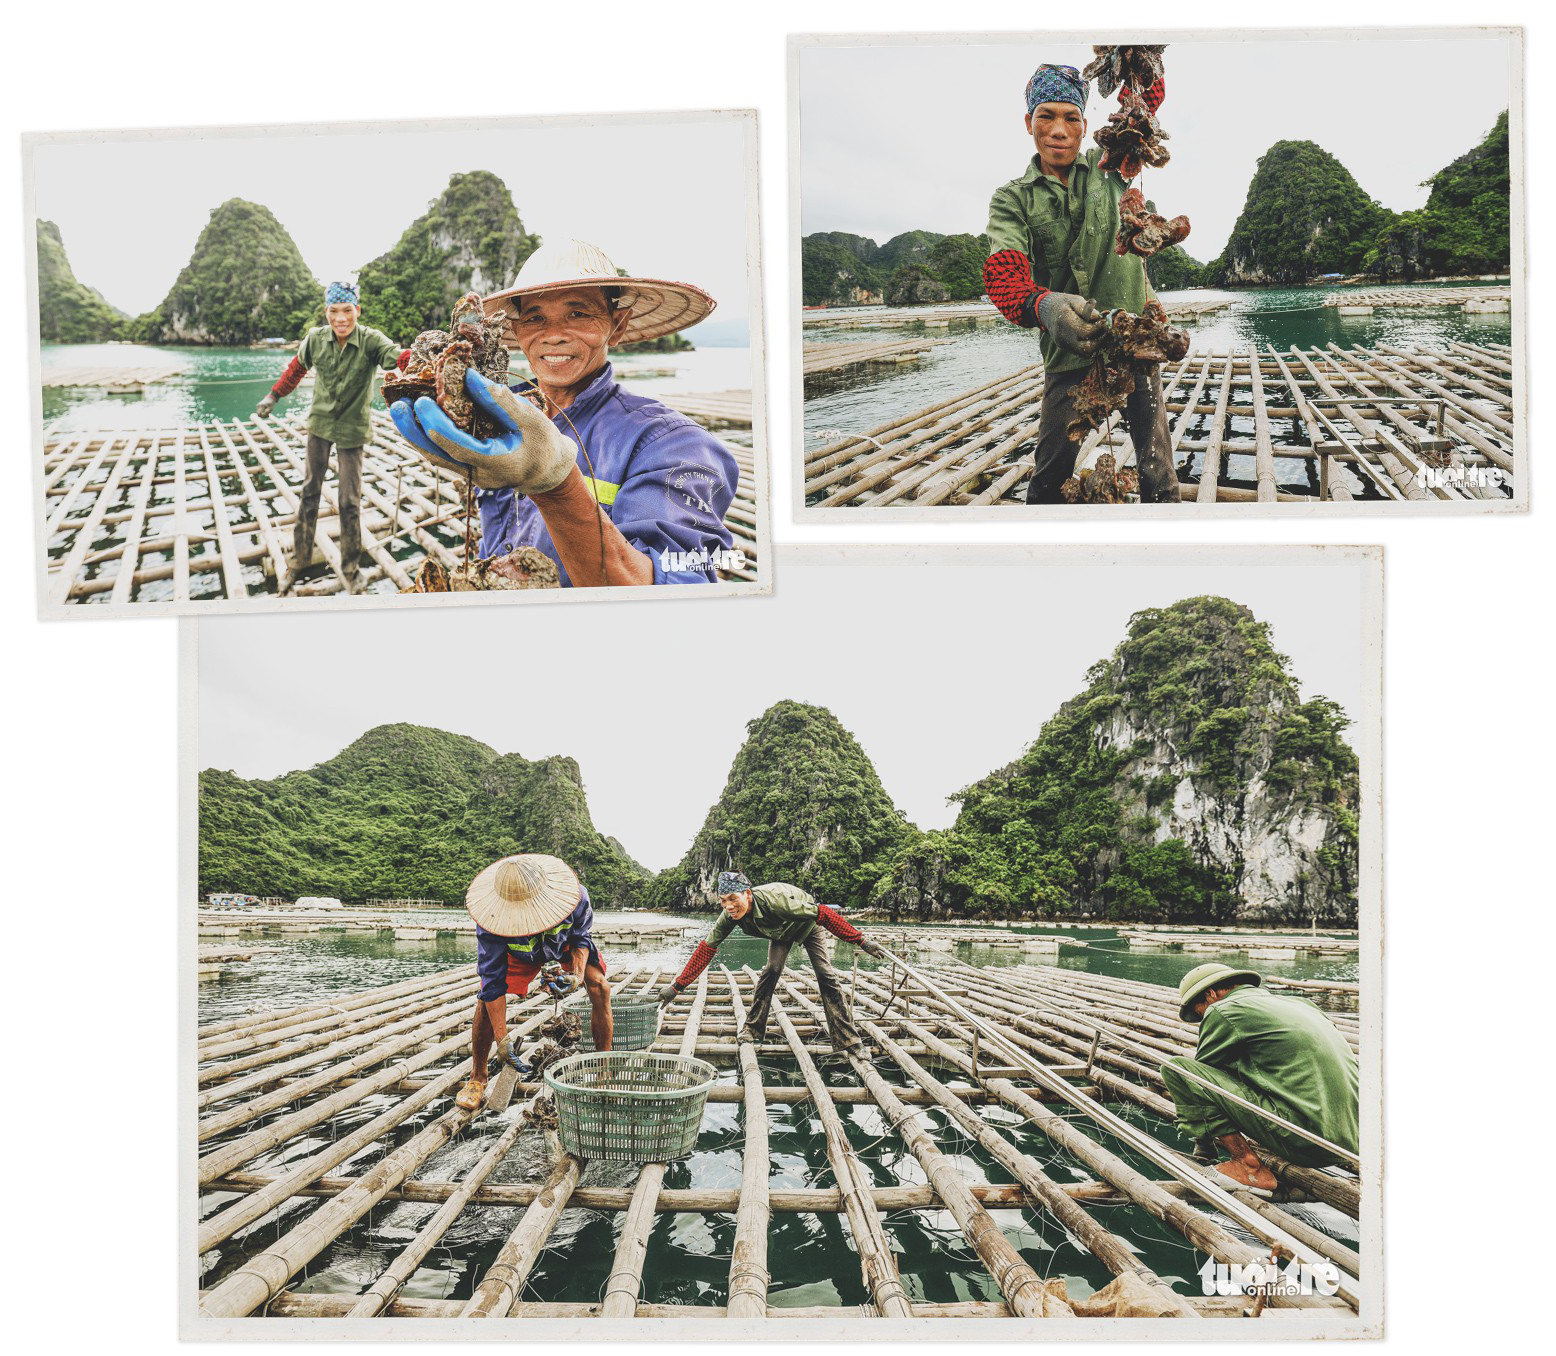 People farm oysters on rafts in Bai Tu Long Bay in Van Don District, Quang Ninh Province, Vietnam.